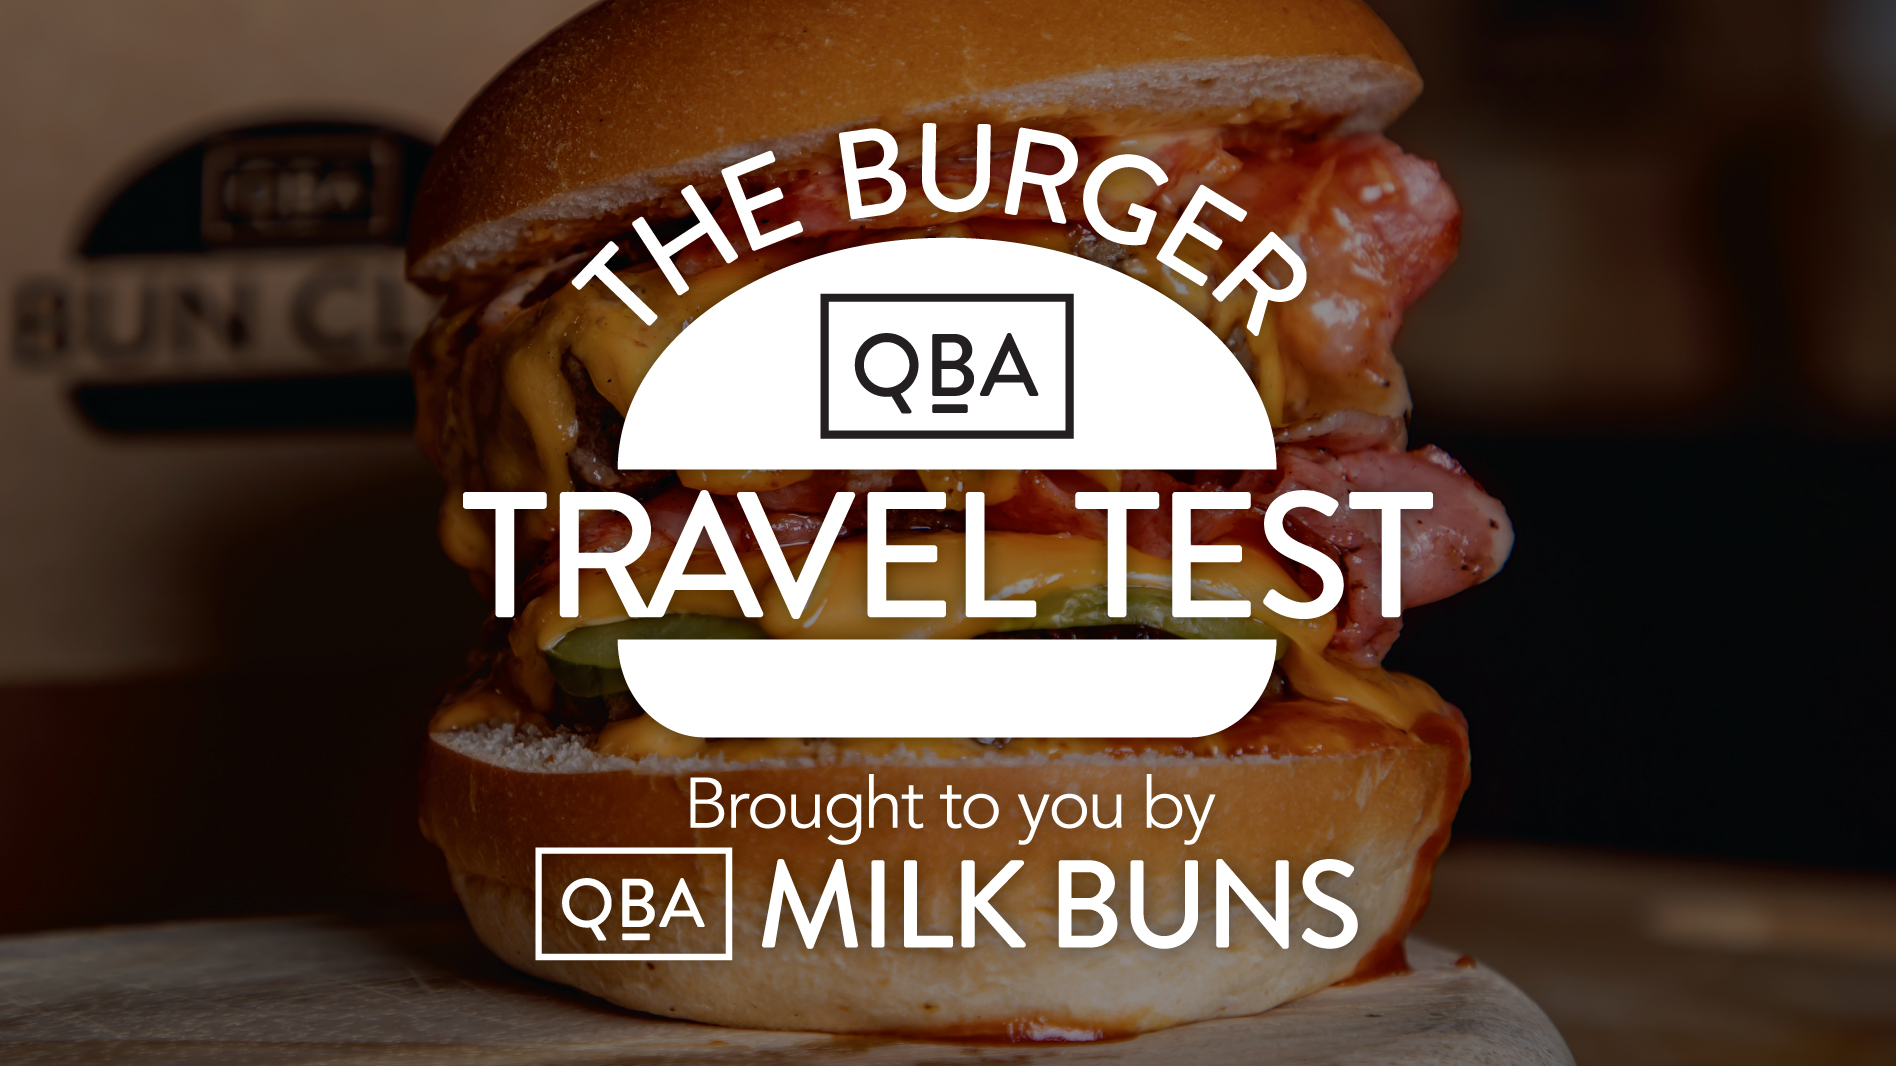 The Burger Travel Test